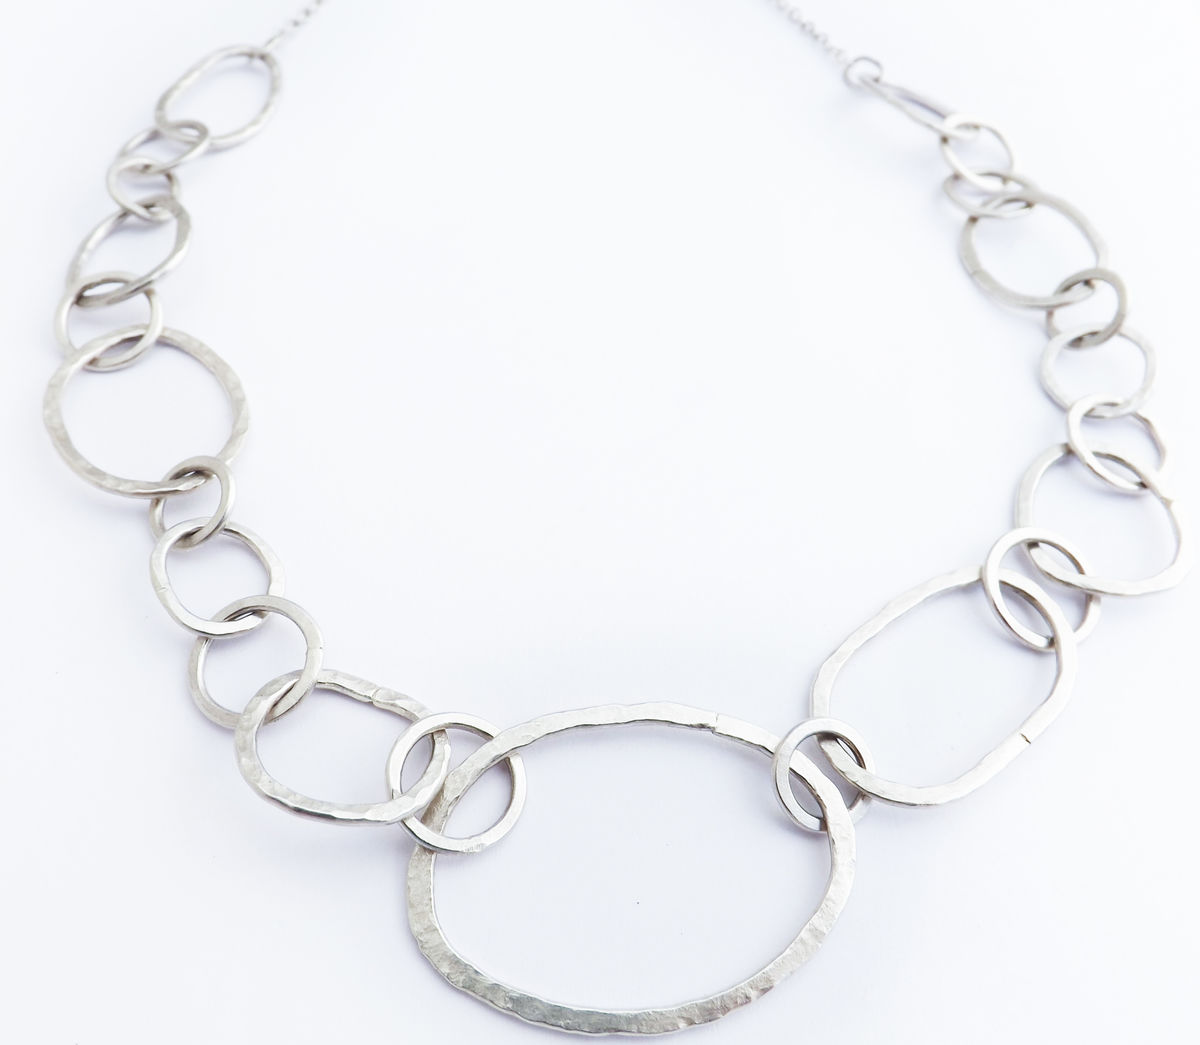 handmade hammered silver chain necklace - product image